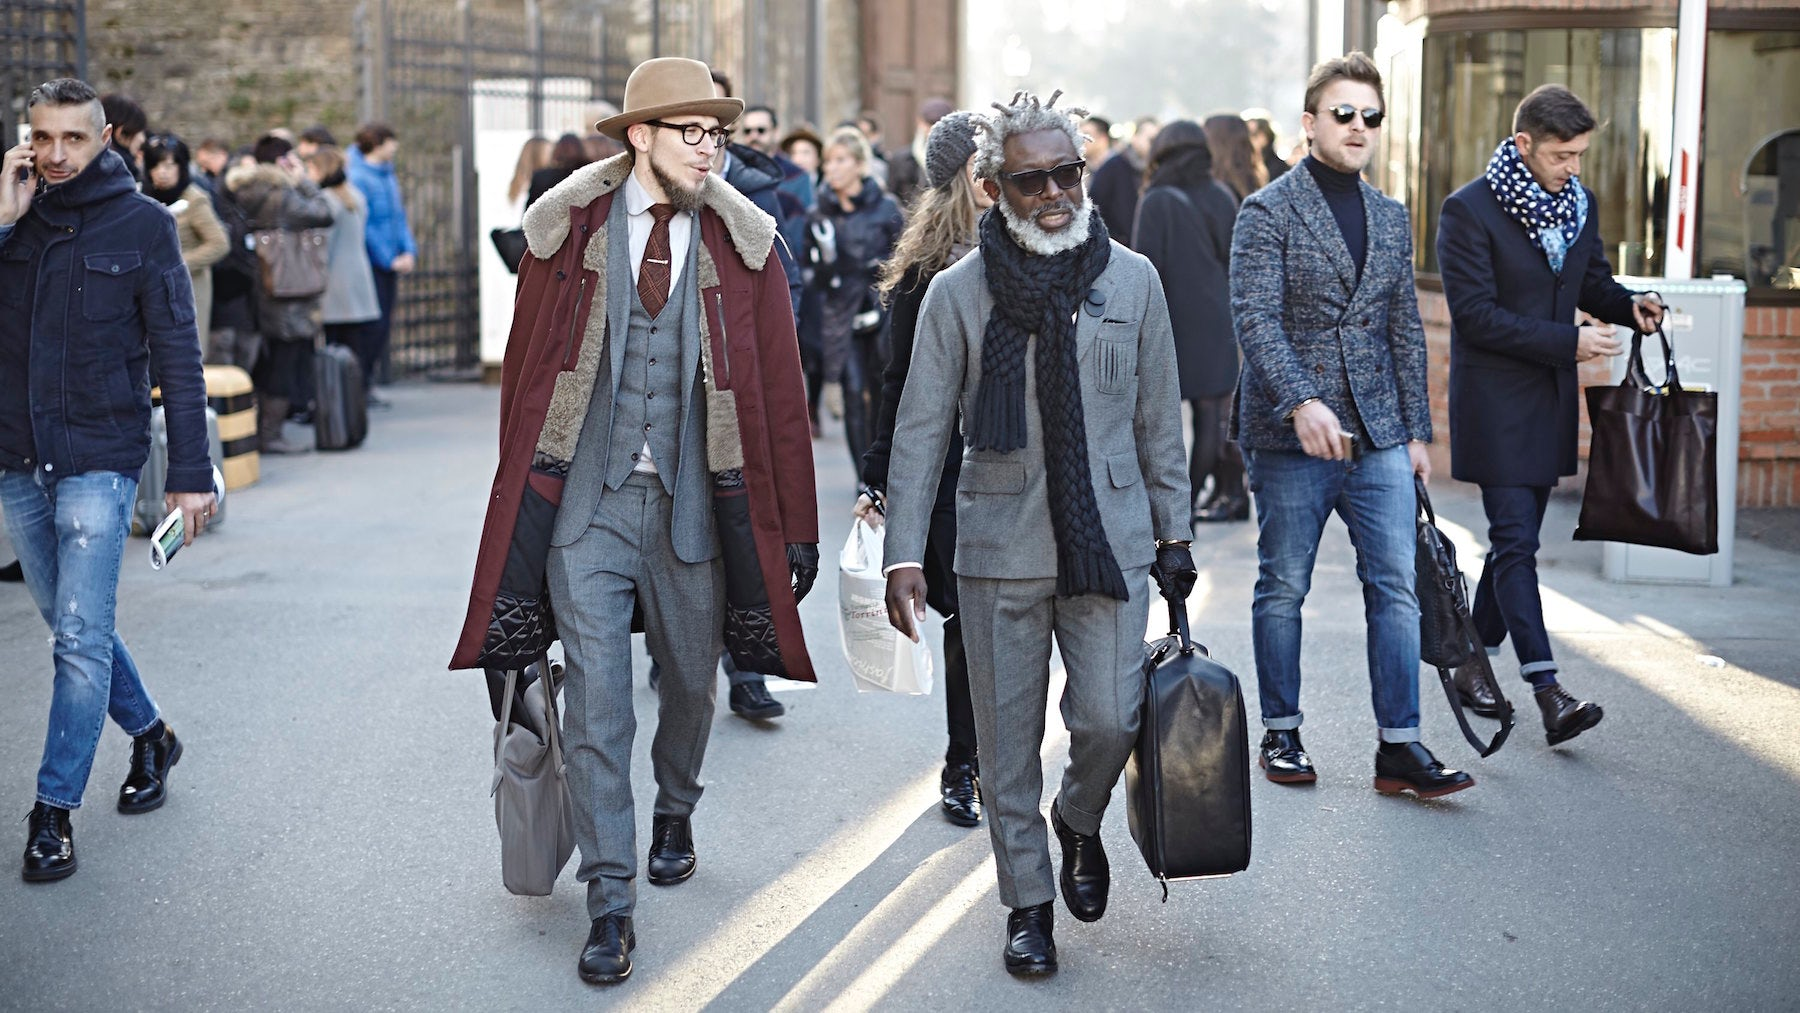 Attendees at Pitti Uomo | Source: Pitti Uomo